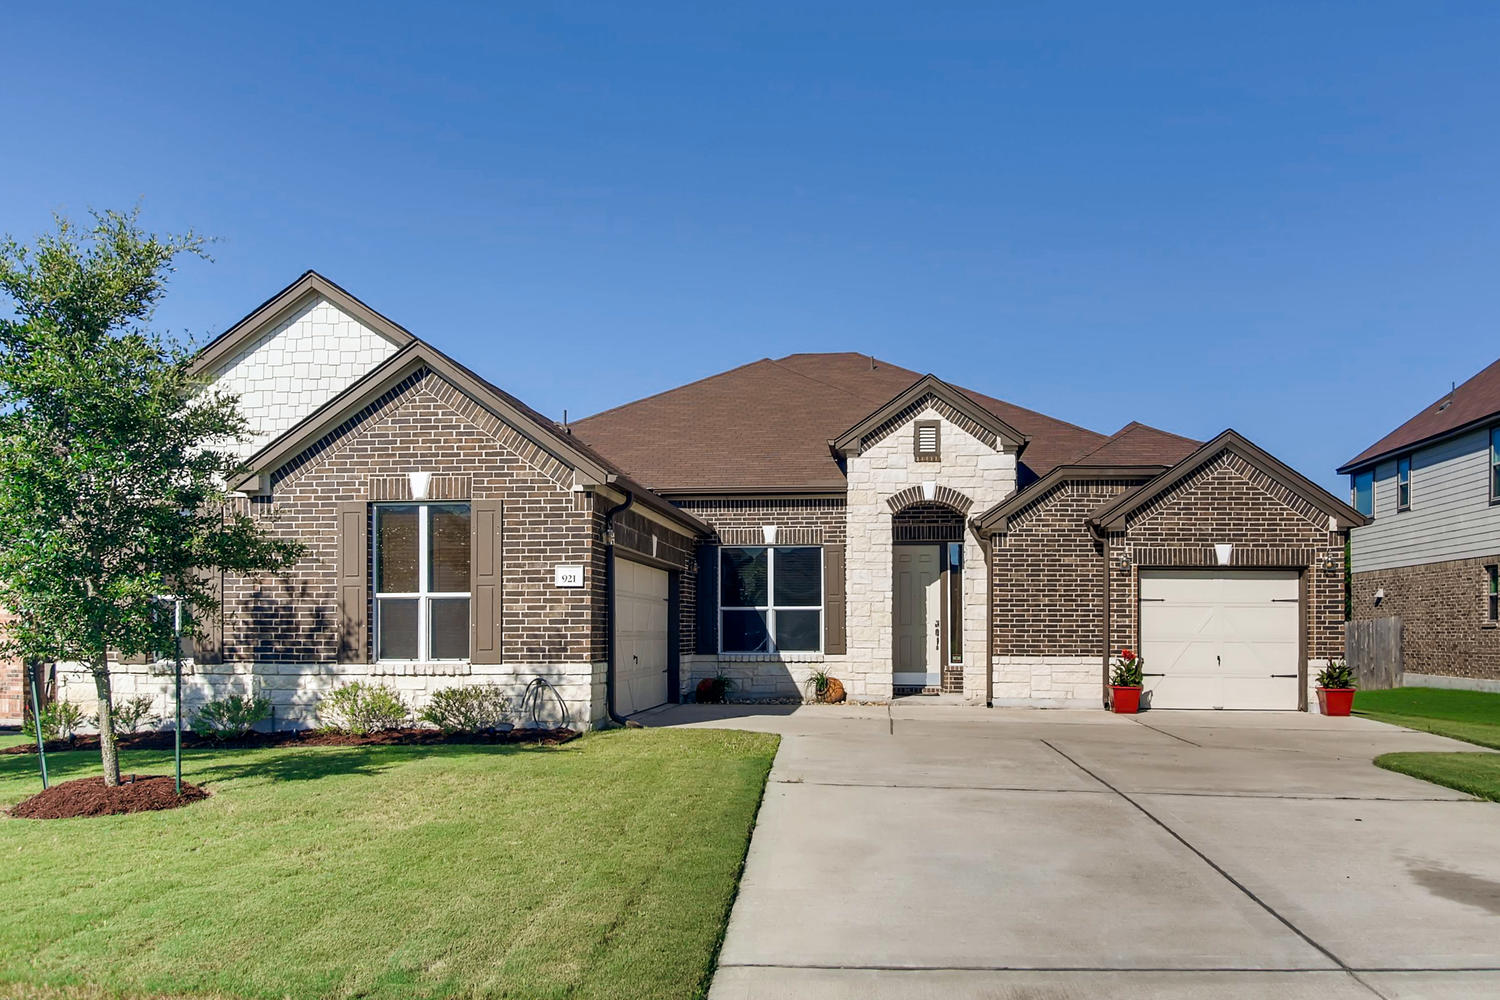 Single Family Homes for Sale at Gorgeous Home in Plugerville 921 Autumn Sage Way Pflugerville, Texas 78660 United States